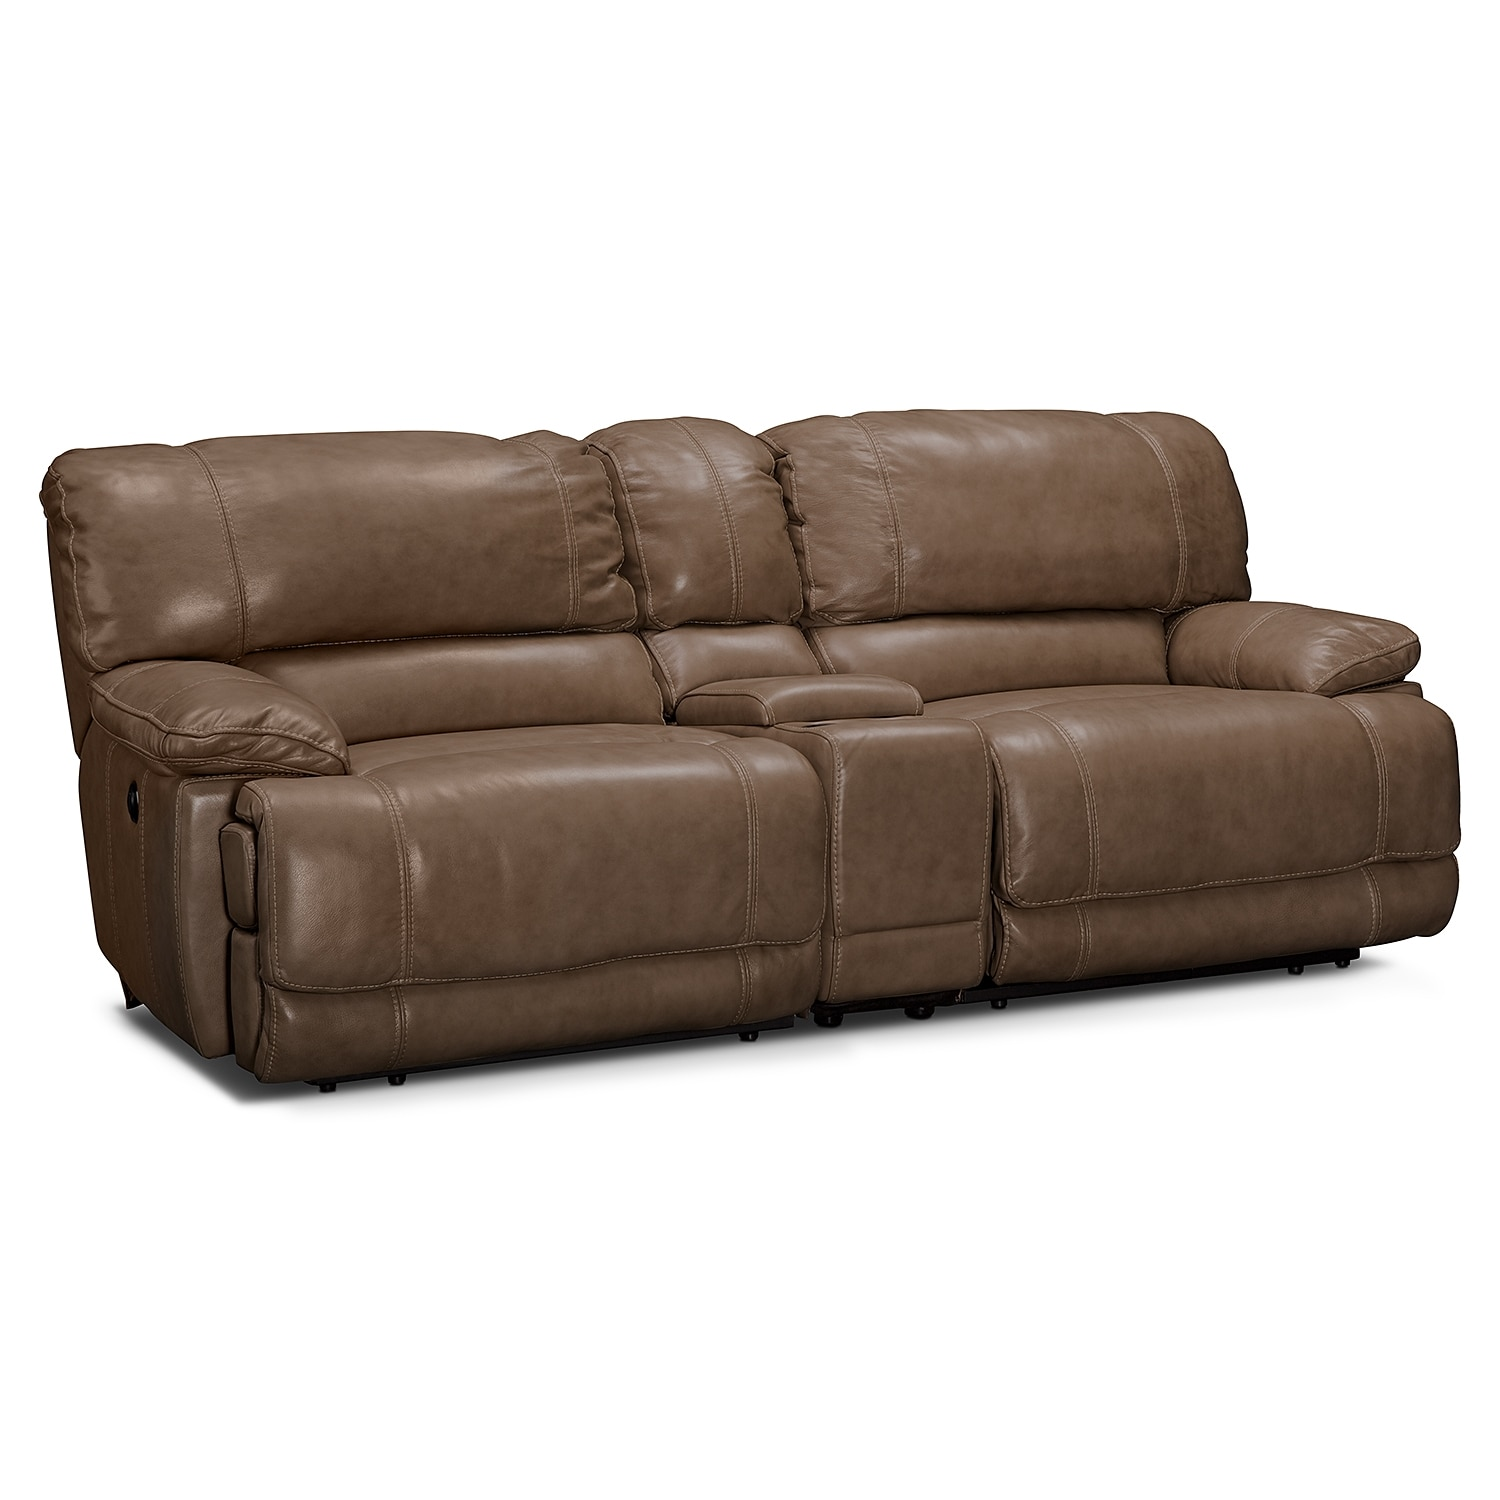 clinton taupe power reclining sofa with console. Black Bedroom Furniture Sets. Home Design Ideas